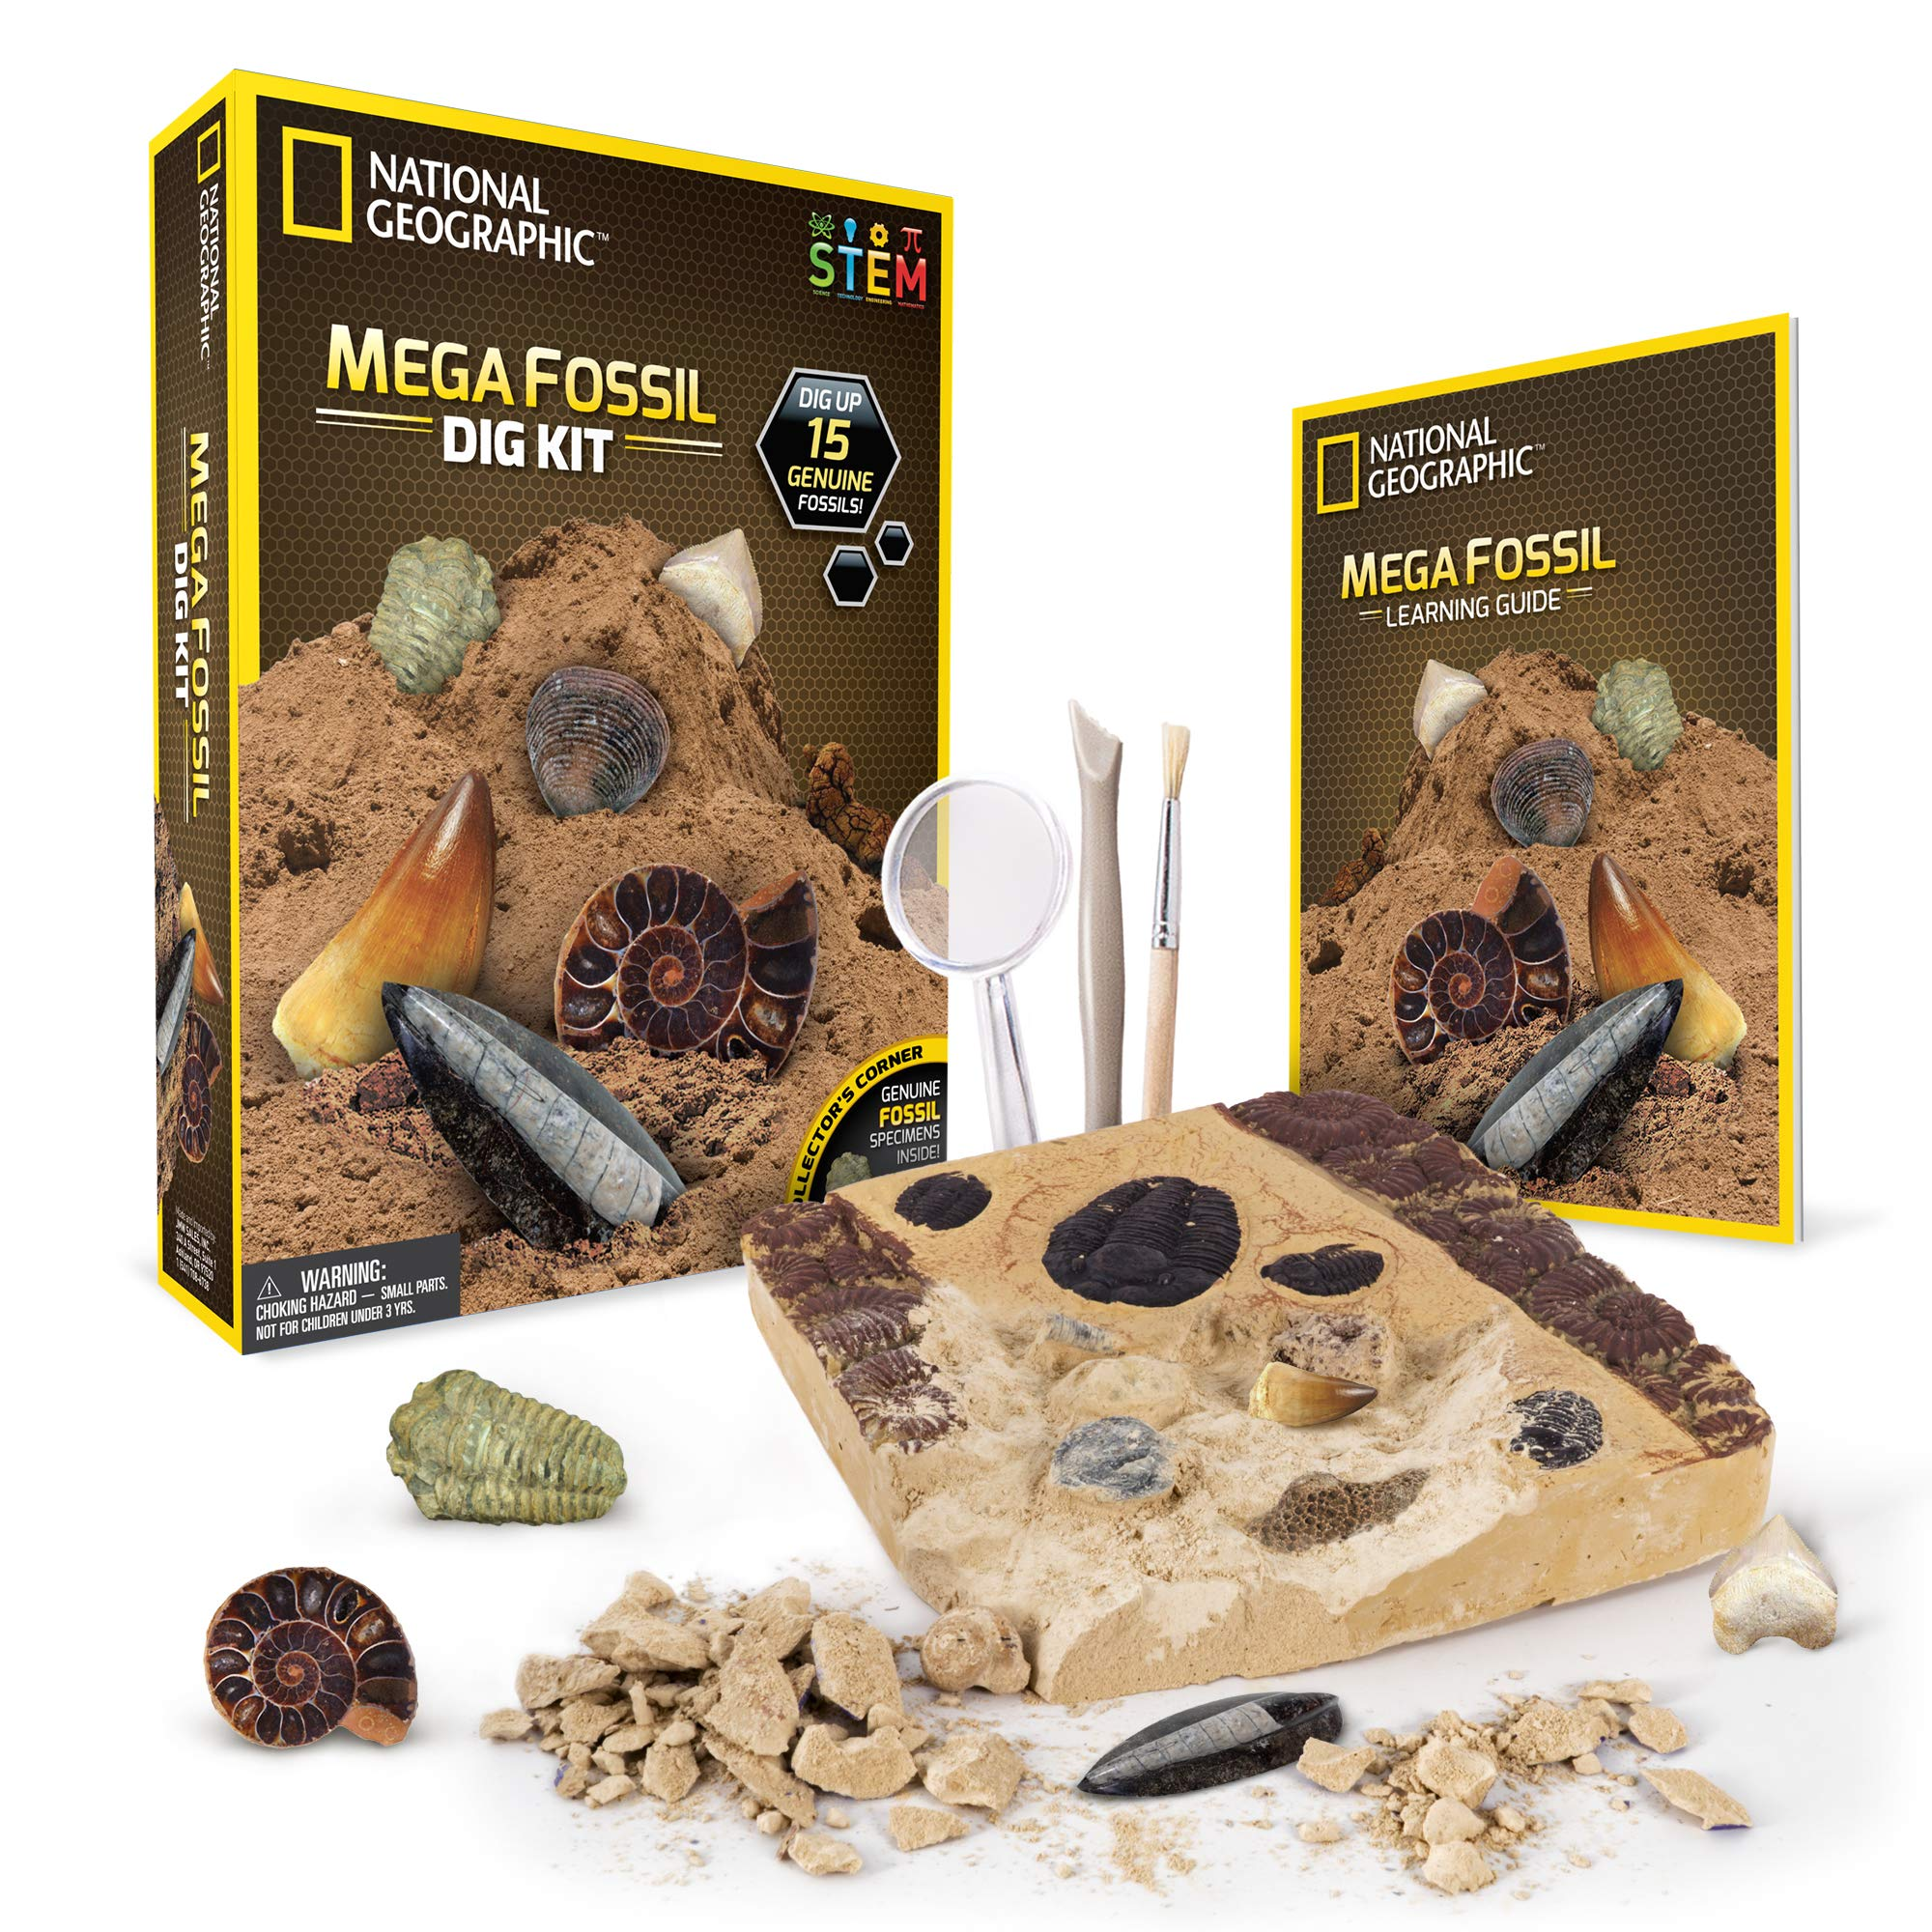 NATIONAL GEOGRAPHIC Mega Fossil Dig Kit - Excavate 15 real fossils including Dinosaur Bones, Mosasaur & Shark Teeth - Great STEM Science gift for Paleontology and Archeology enthusiasts of any age by NATIONAL GEOGRAPHIC